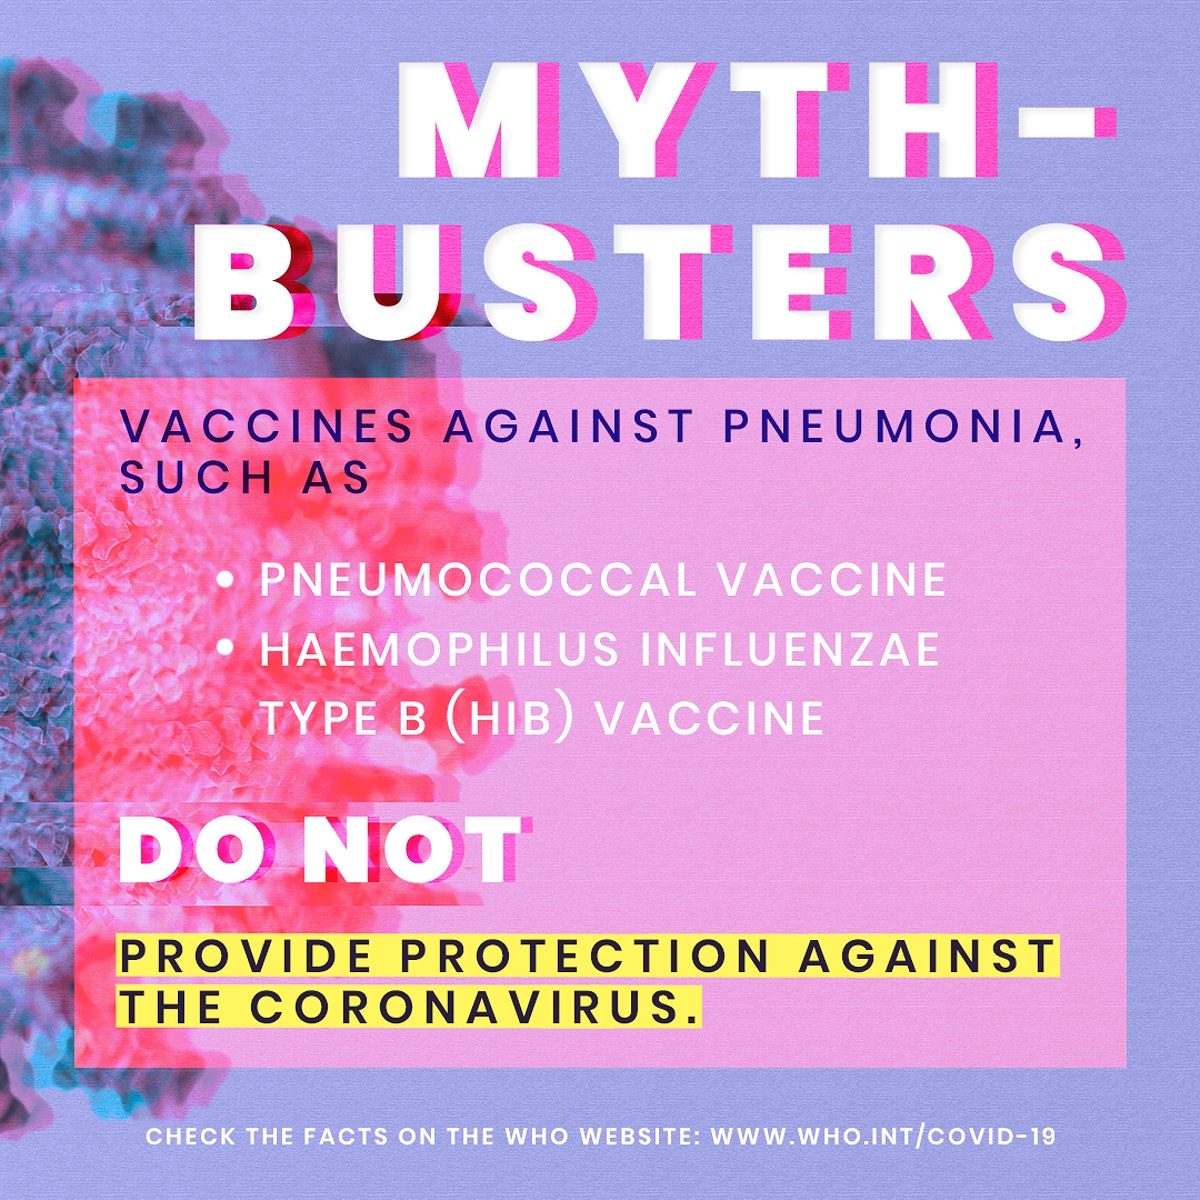 Vaccines against pneumonia myth-busters during coronavirus pandemic social template source WHO mockup